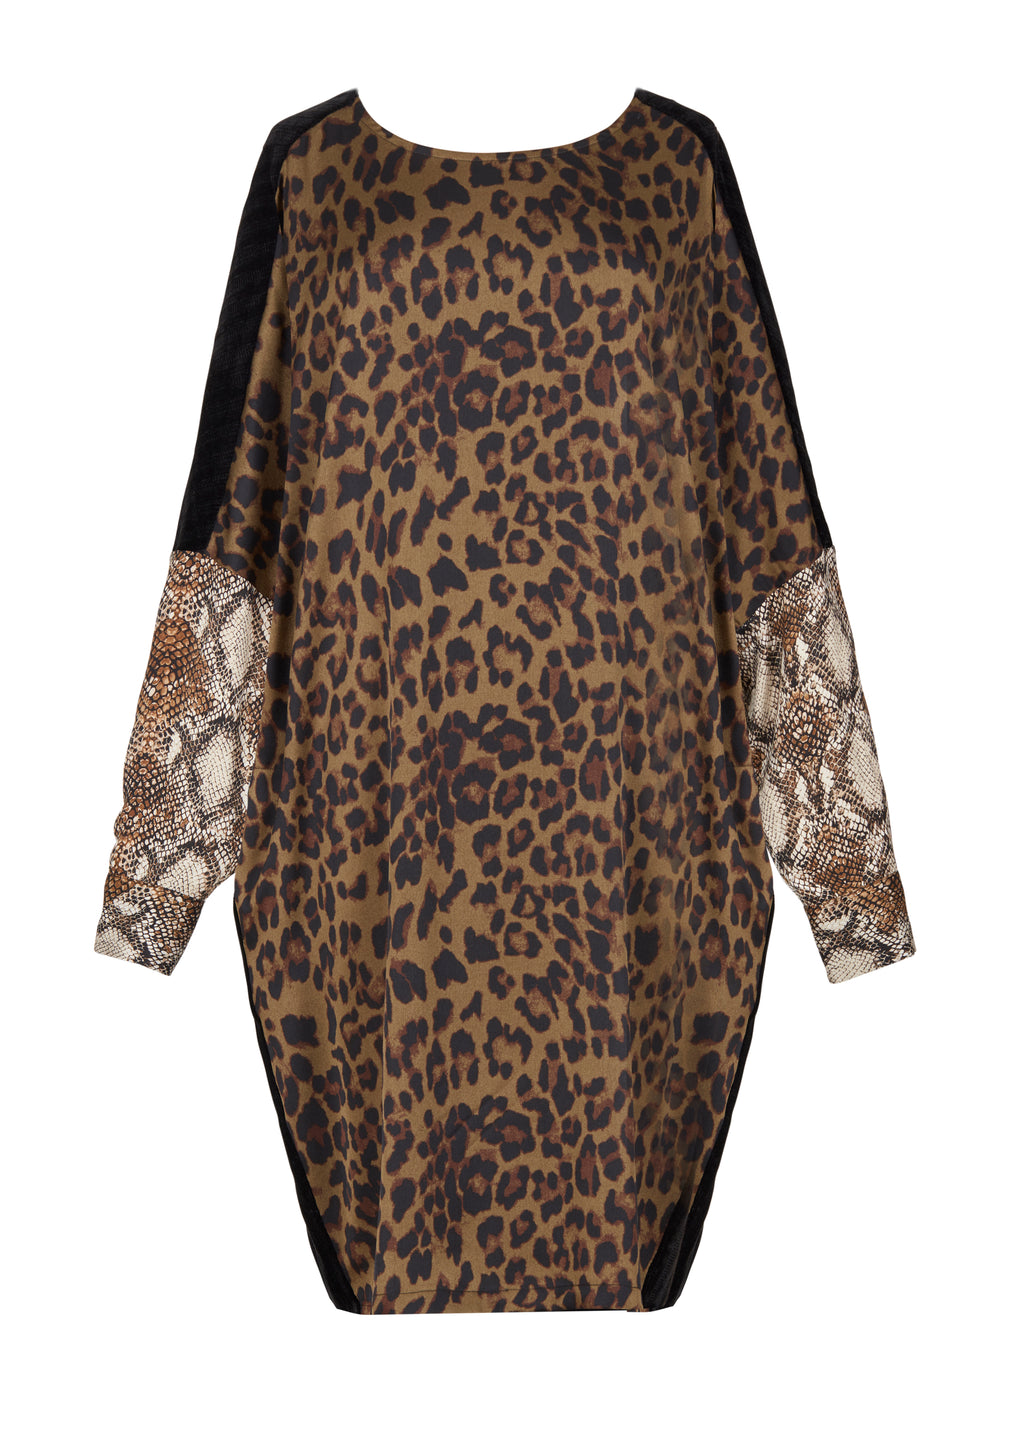 ALD406 Leopard Dress